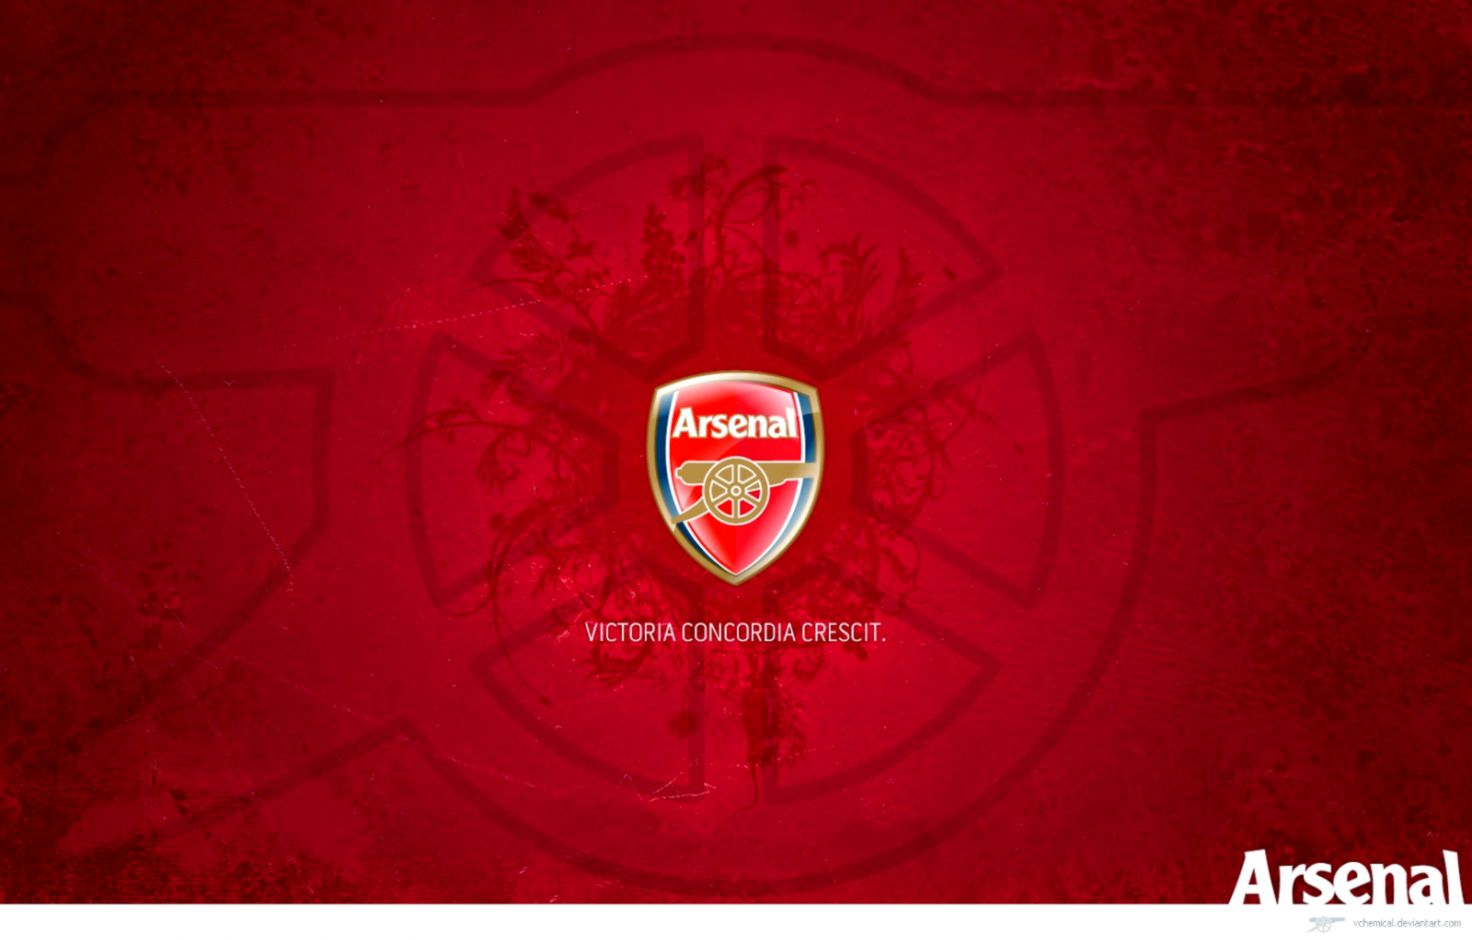 Arsenal Logo Football Hd Wallpaper Wallpapers Sinaga